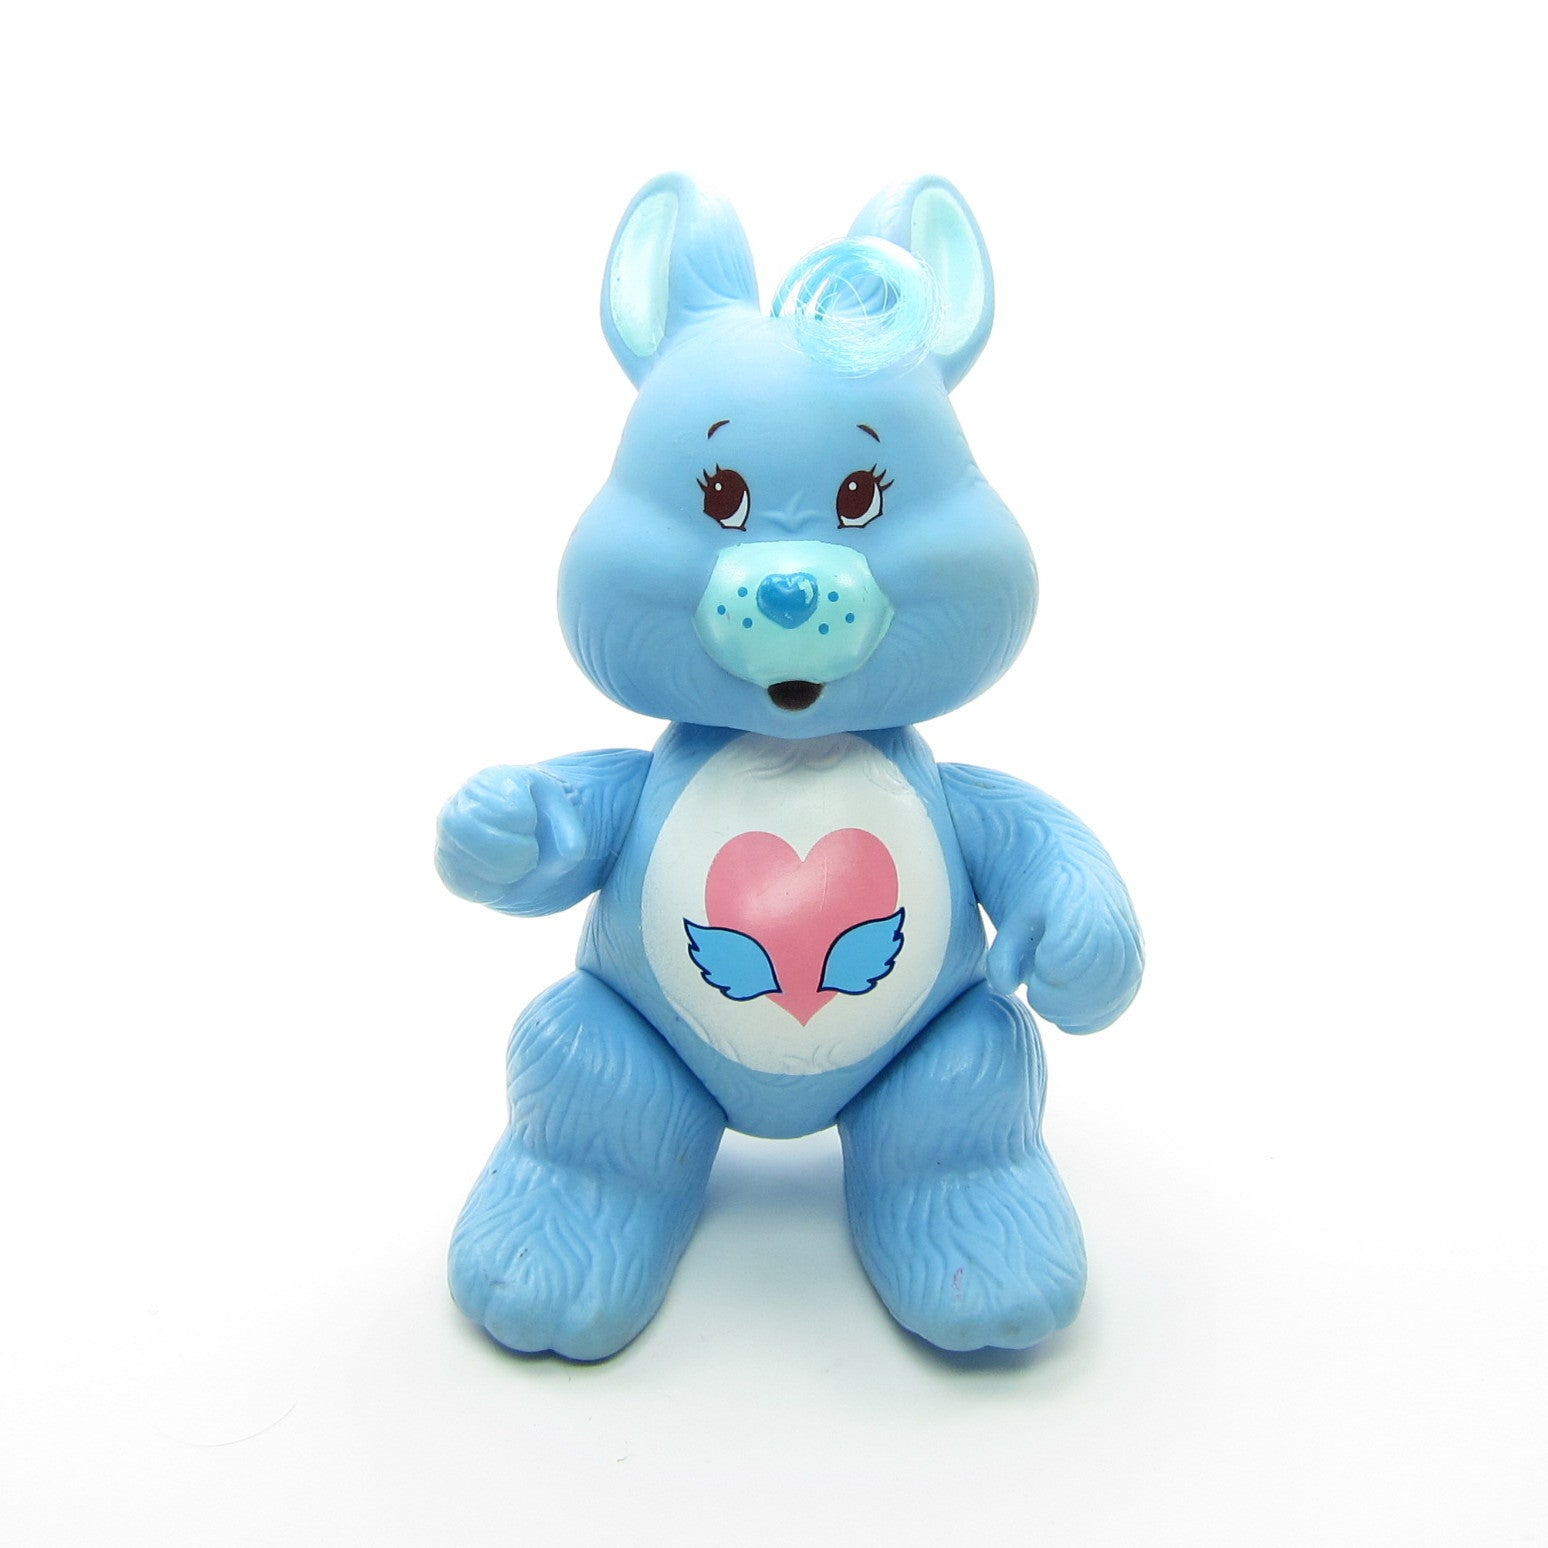 Swift Heart Rabbit Care Bears Cousin